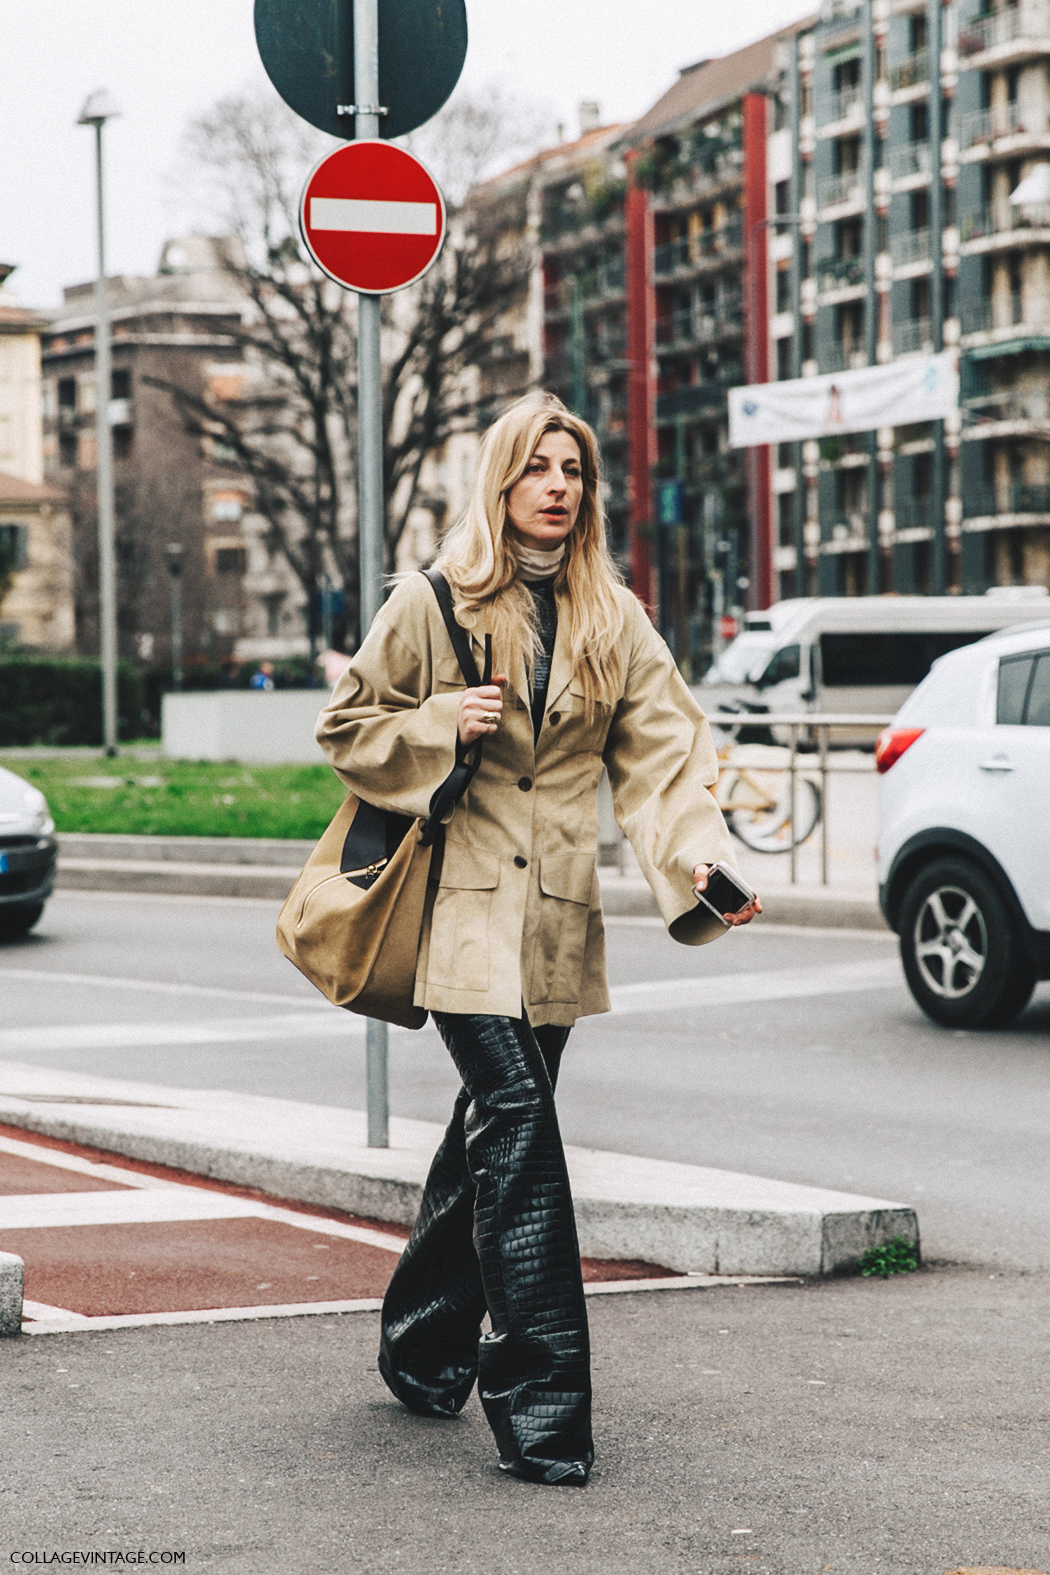 Milan_Fashion_Week_Fall_16-MFW-Street_Style-Collage_Vintage-Ada_kokosar-Leather_trousers-5